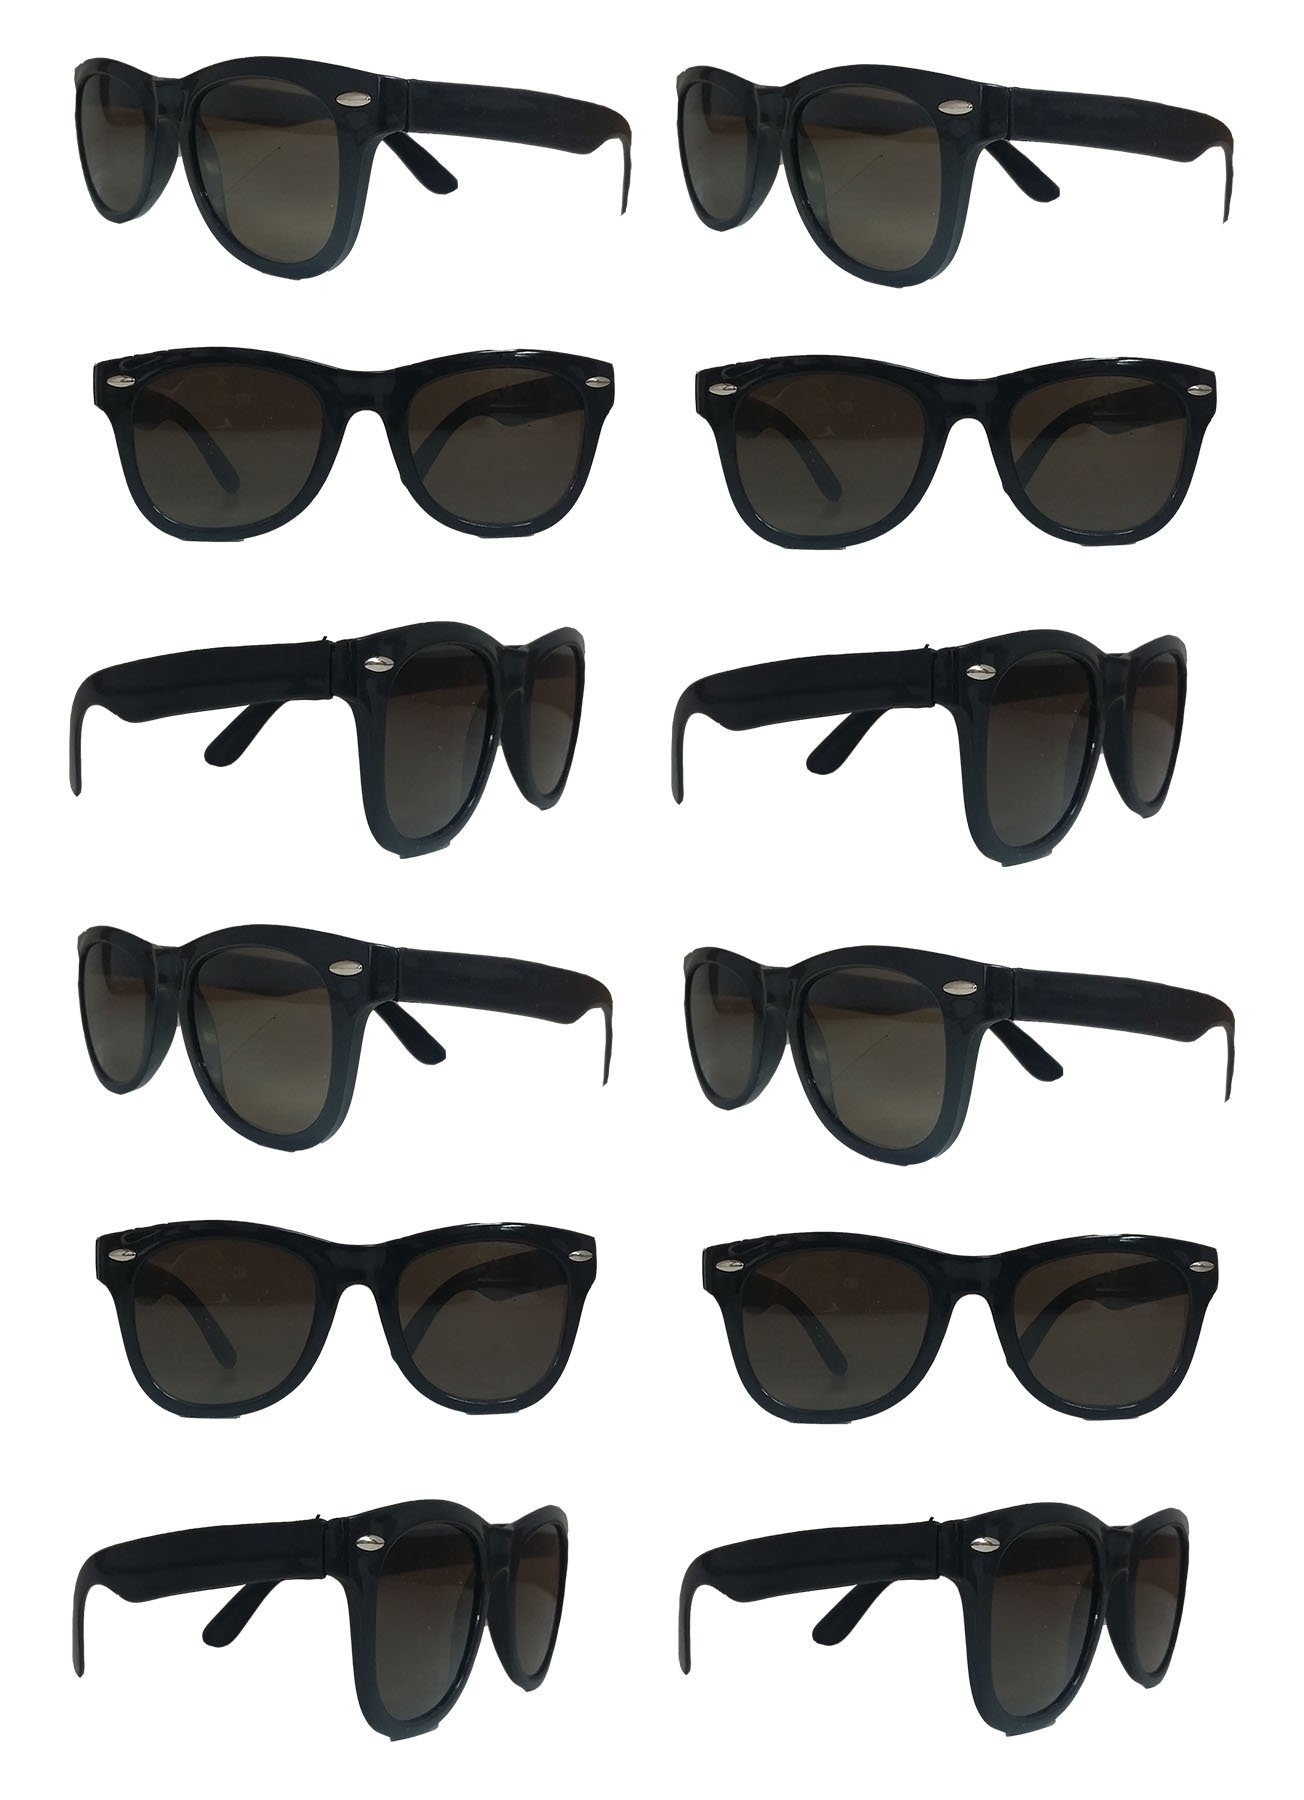 Black Sunglasses Wholesale Party Pack-12 Retro Wayfarer Risky Business-Blues Brothers Black Sunglasses For Graduation-Mardi-Gras-Holidays-Birthdays-Parties-Adults and Kids-New Improved Great Quality by TheGag